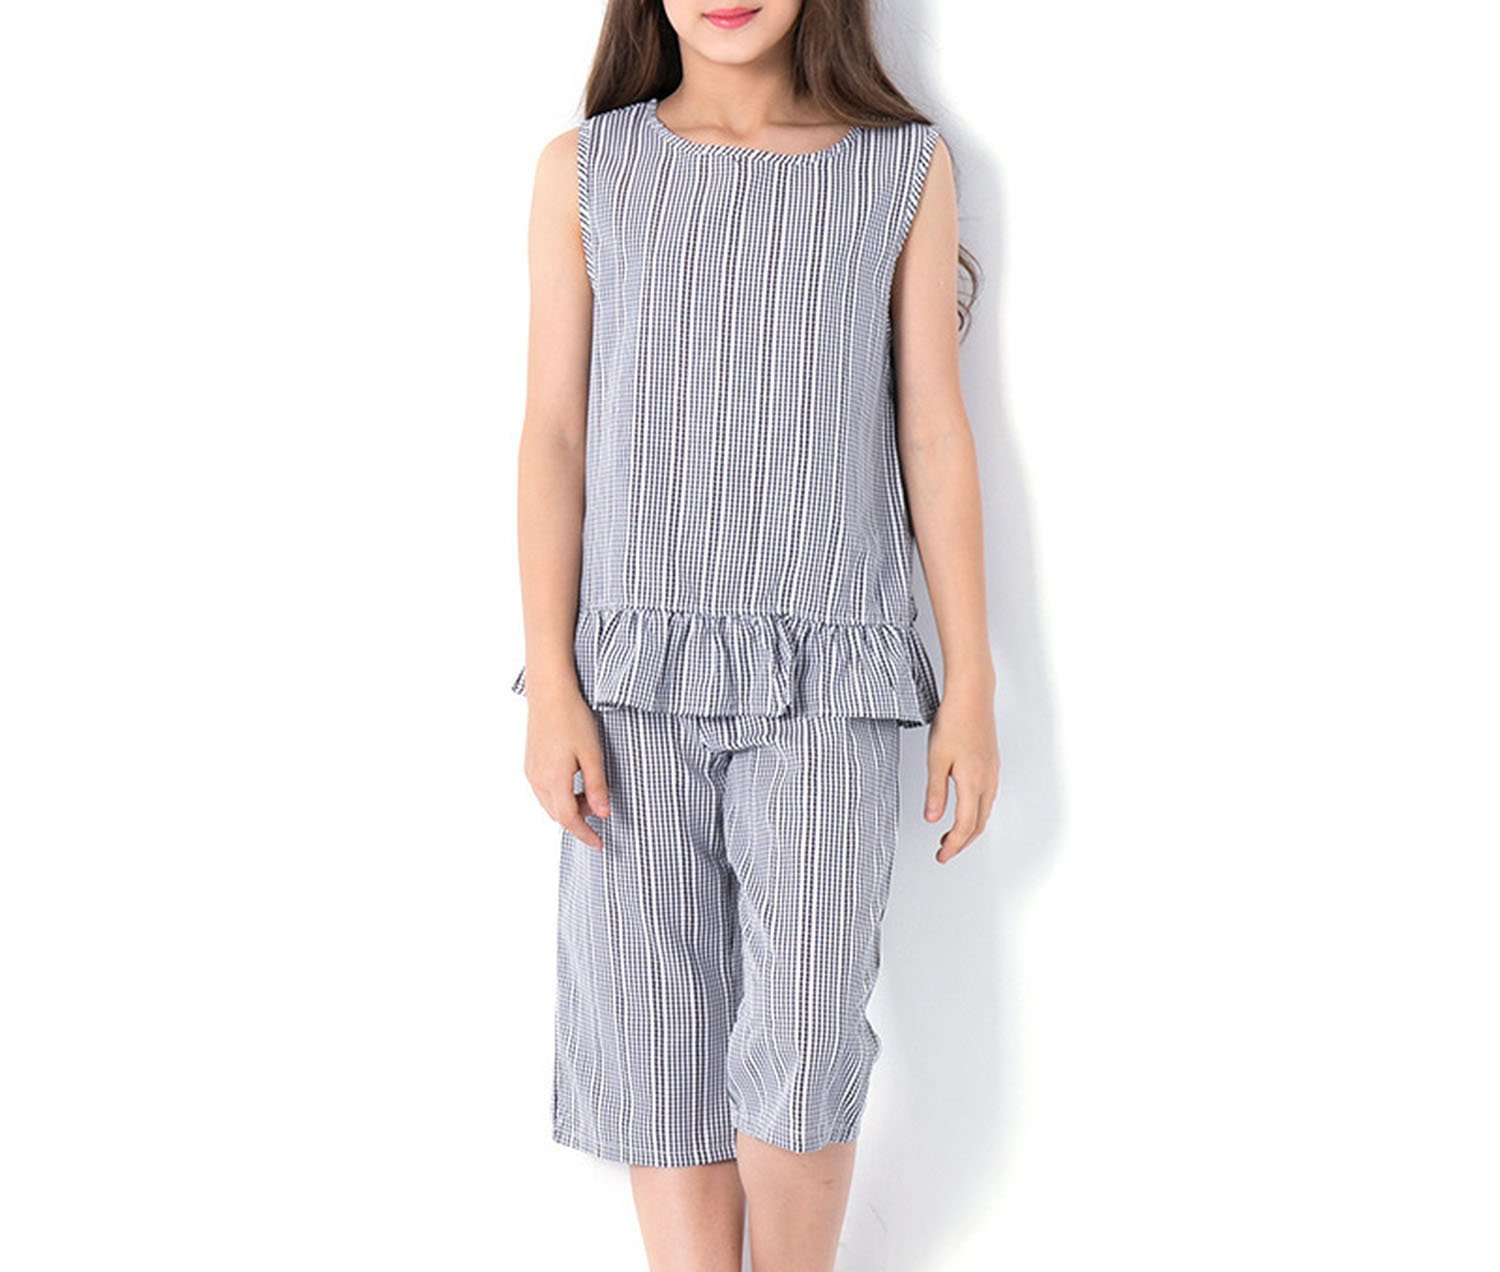 Zcaosma Young Girl Sets Striped Vest Wide Leg Pants Set for Big Teenage Girls,Grey,6